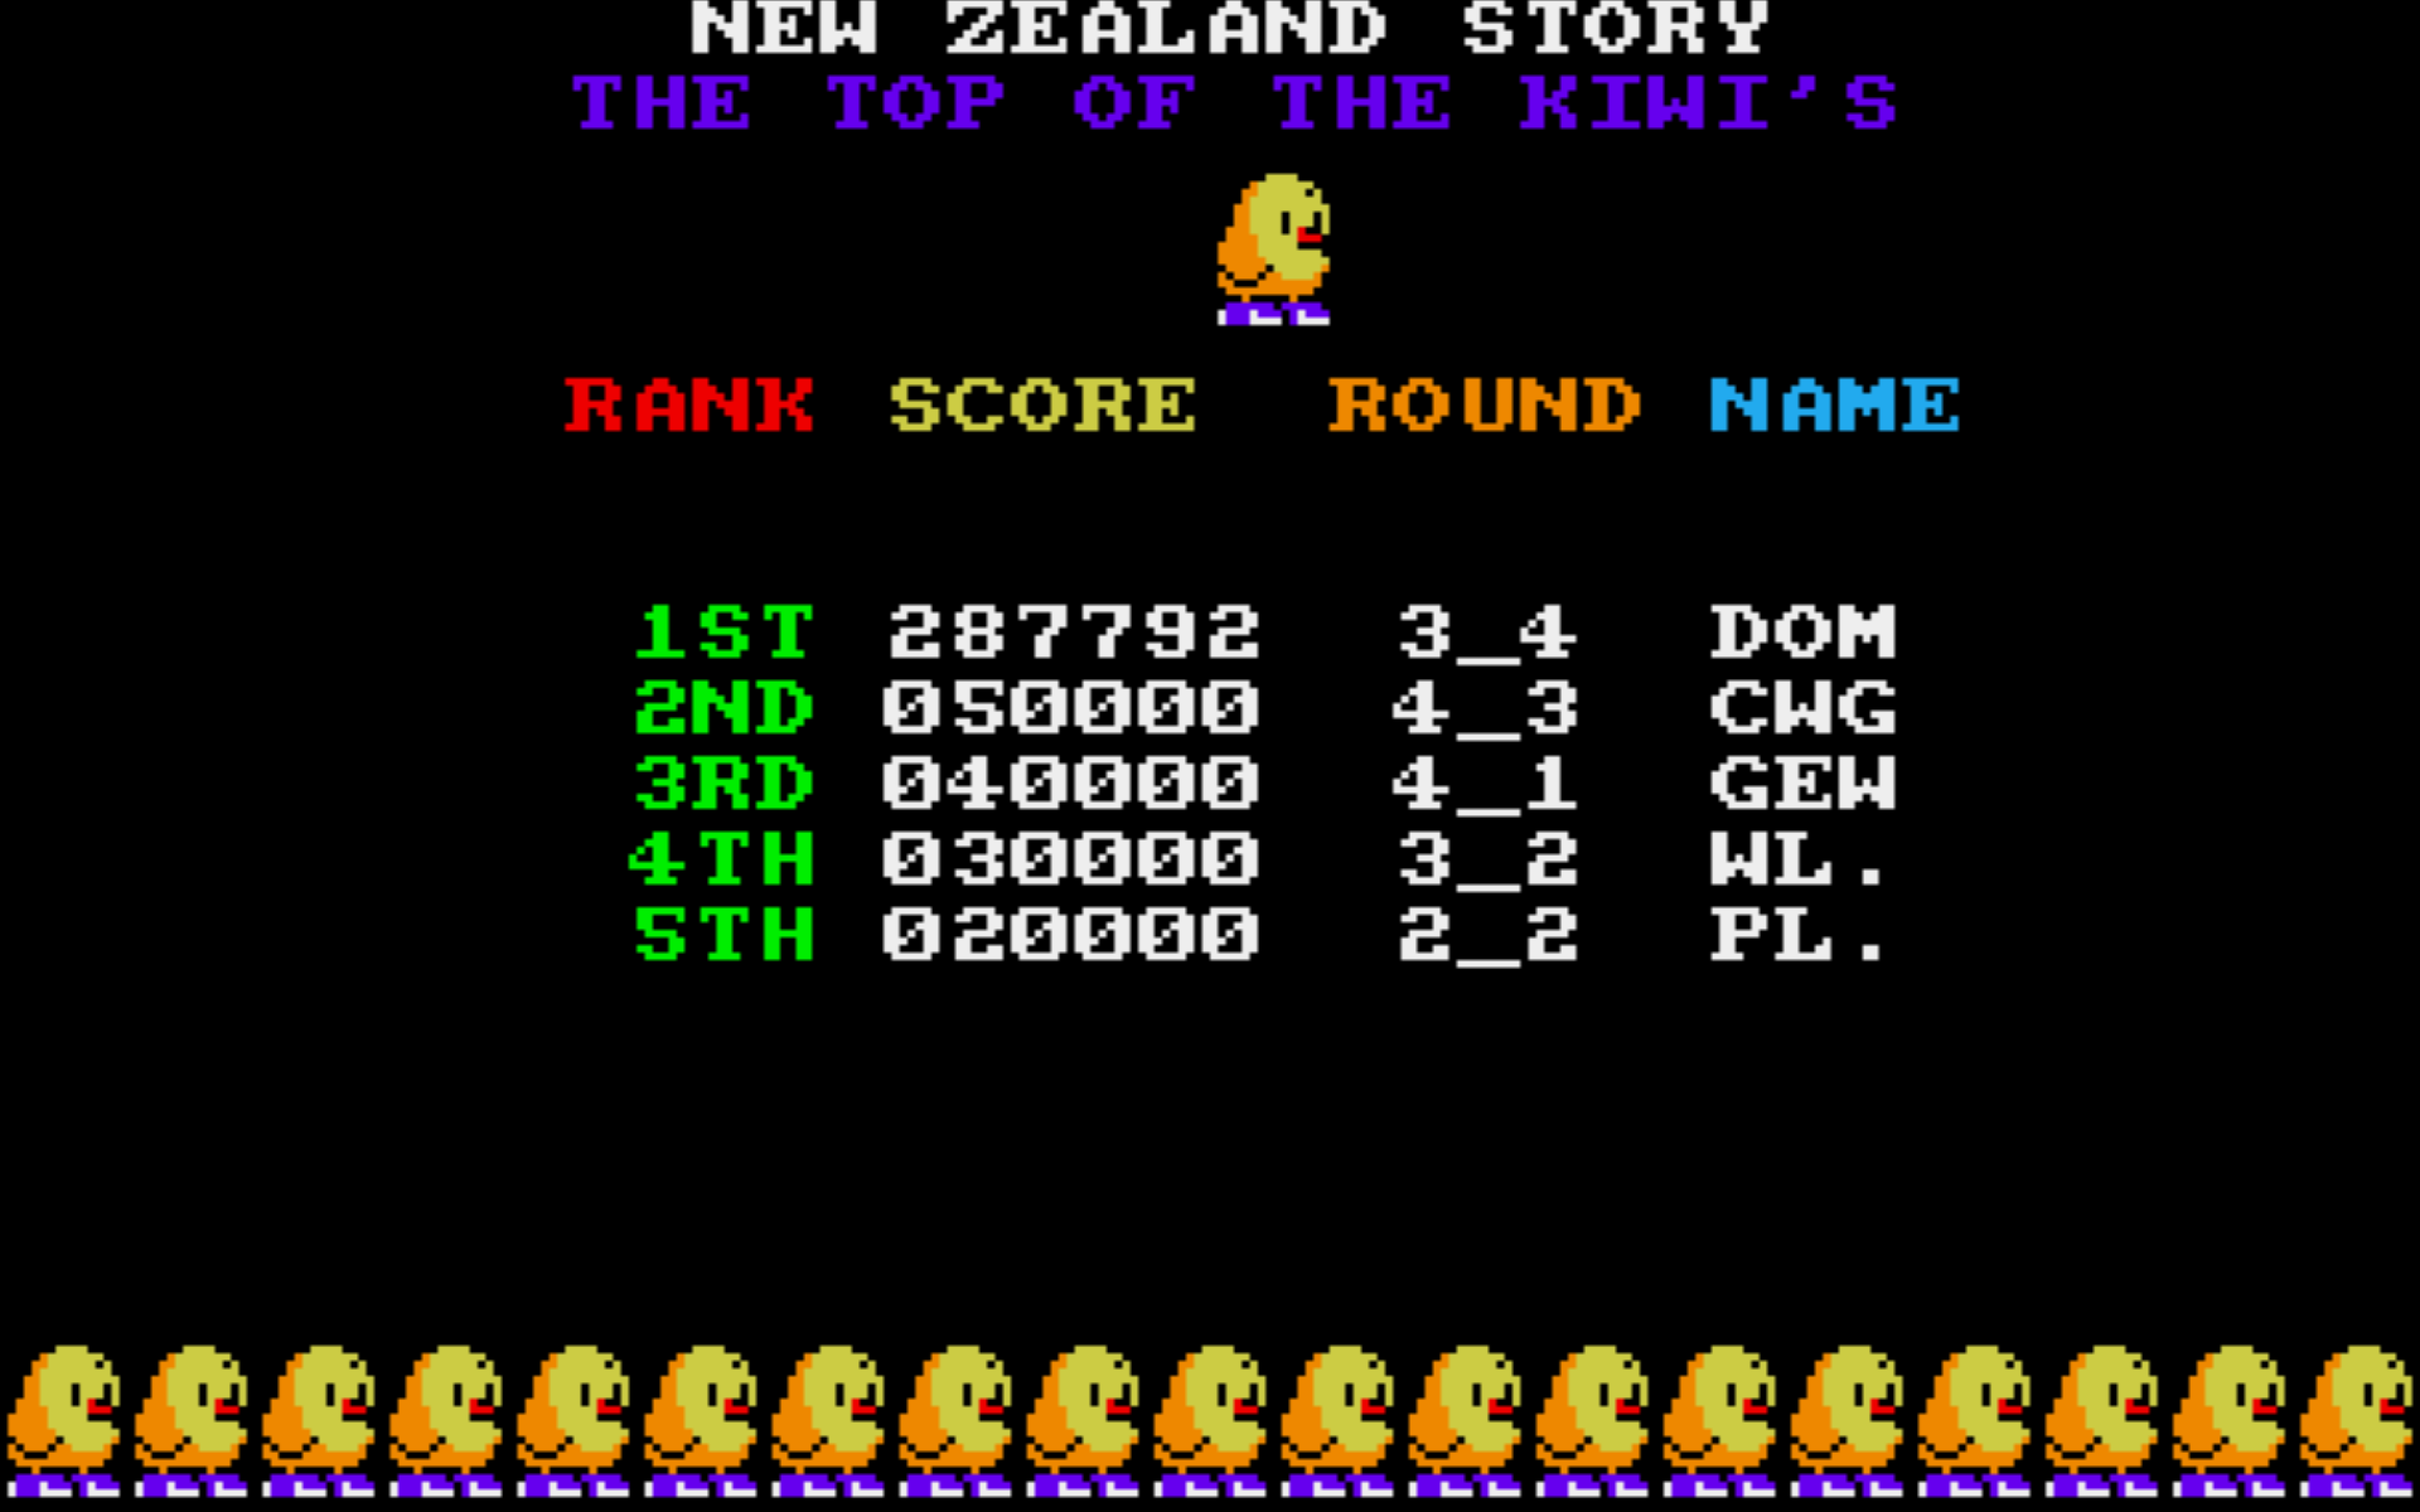 The New Zealand Story 287,792 points